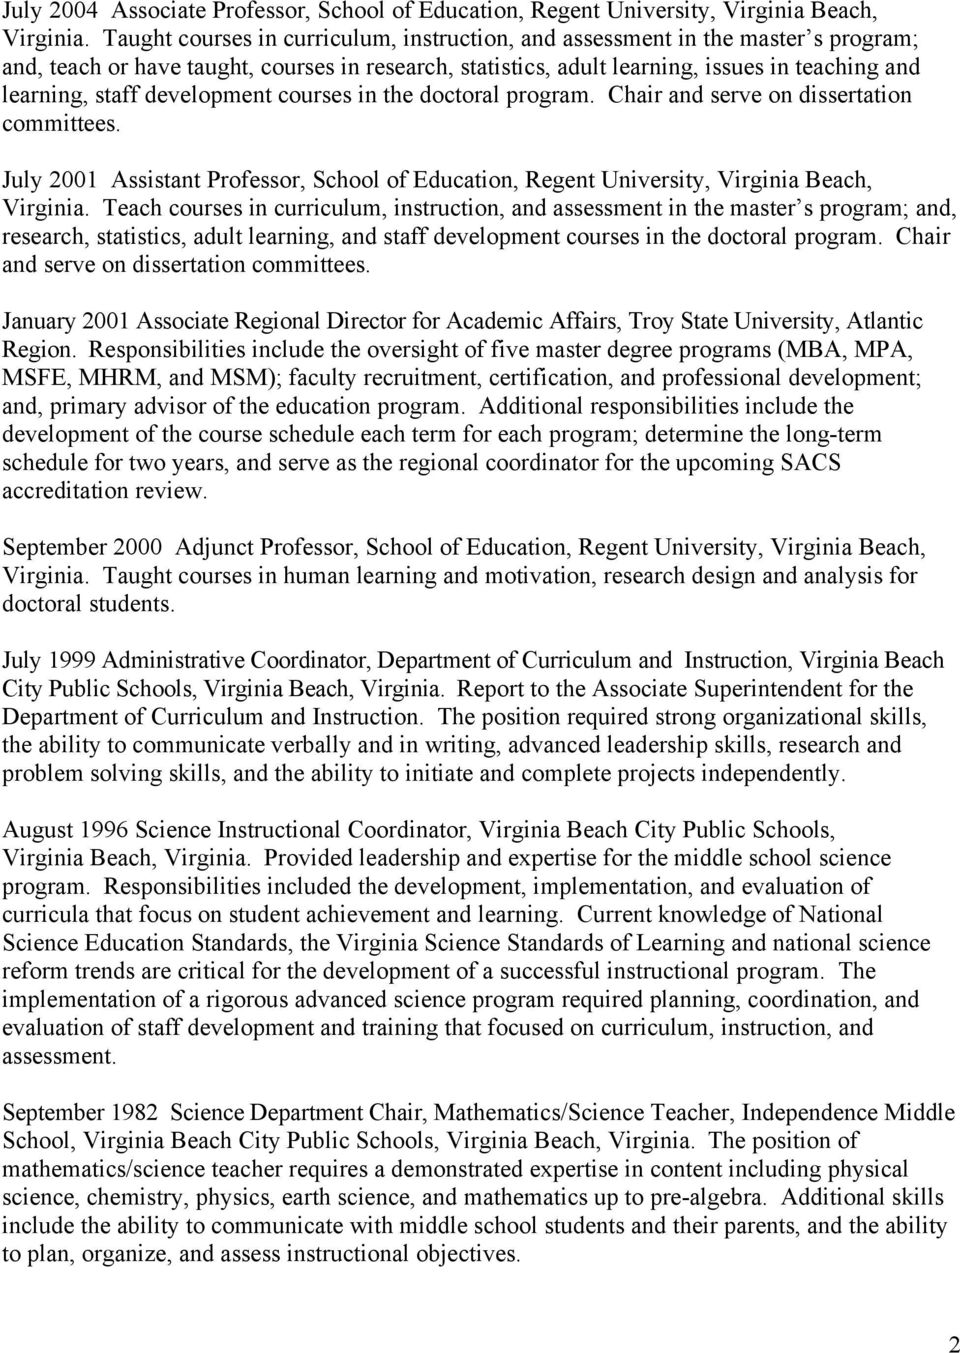 development courses in the doctoral program. Chair and serve on dissertation committees. July 2001 Assistant Professor, School of Education, Regent University, Virginia Beach, Virginia.